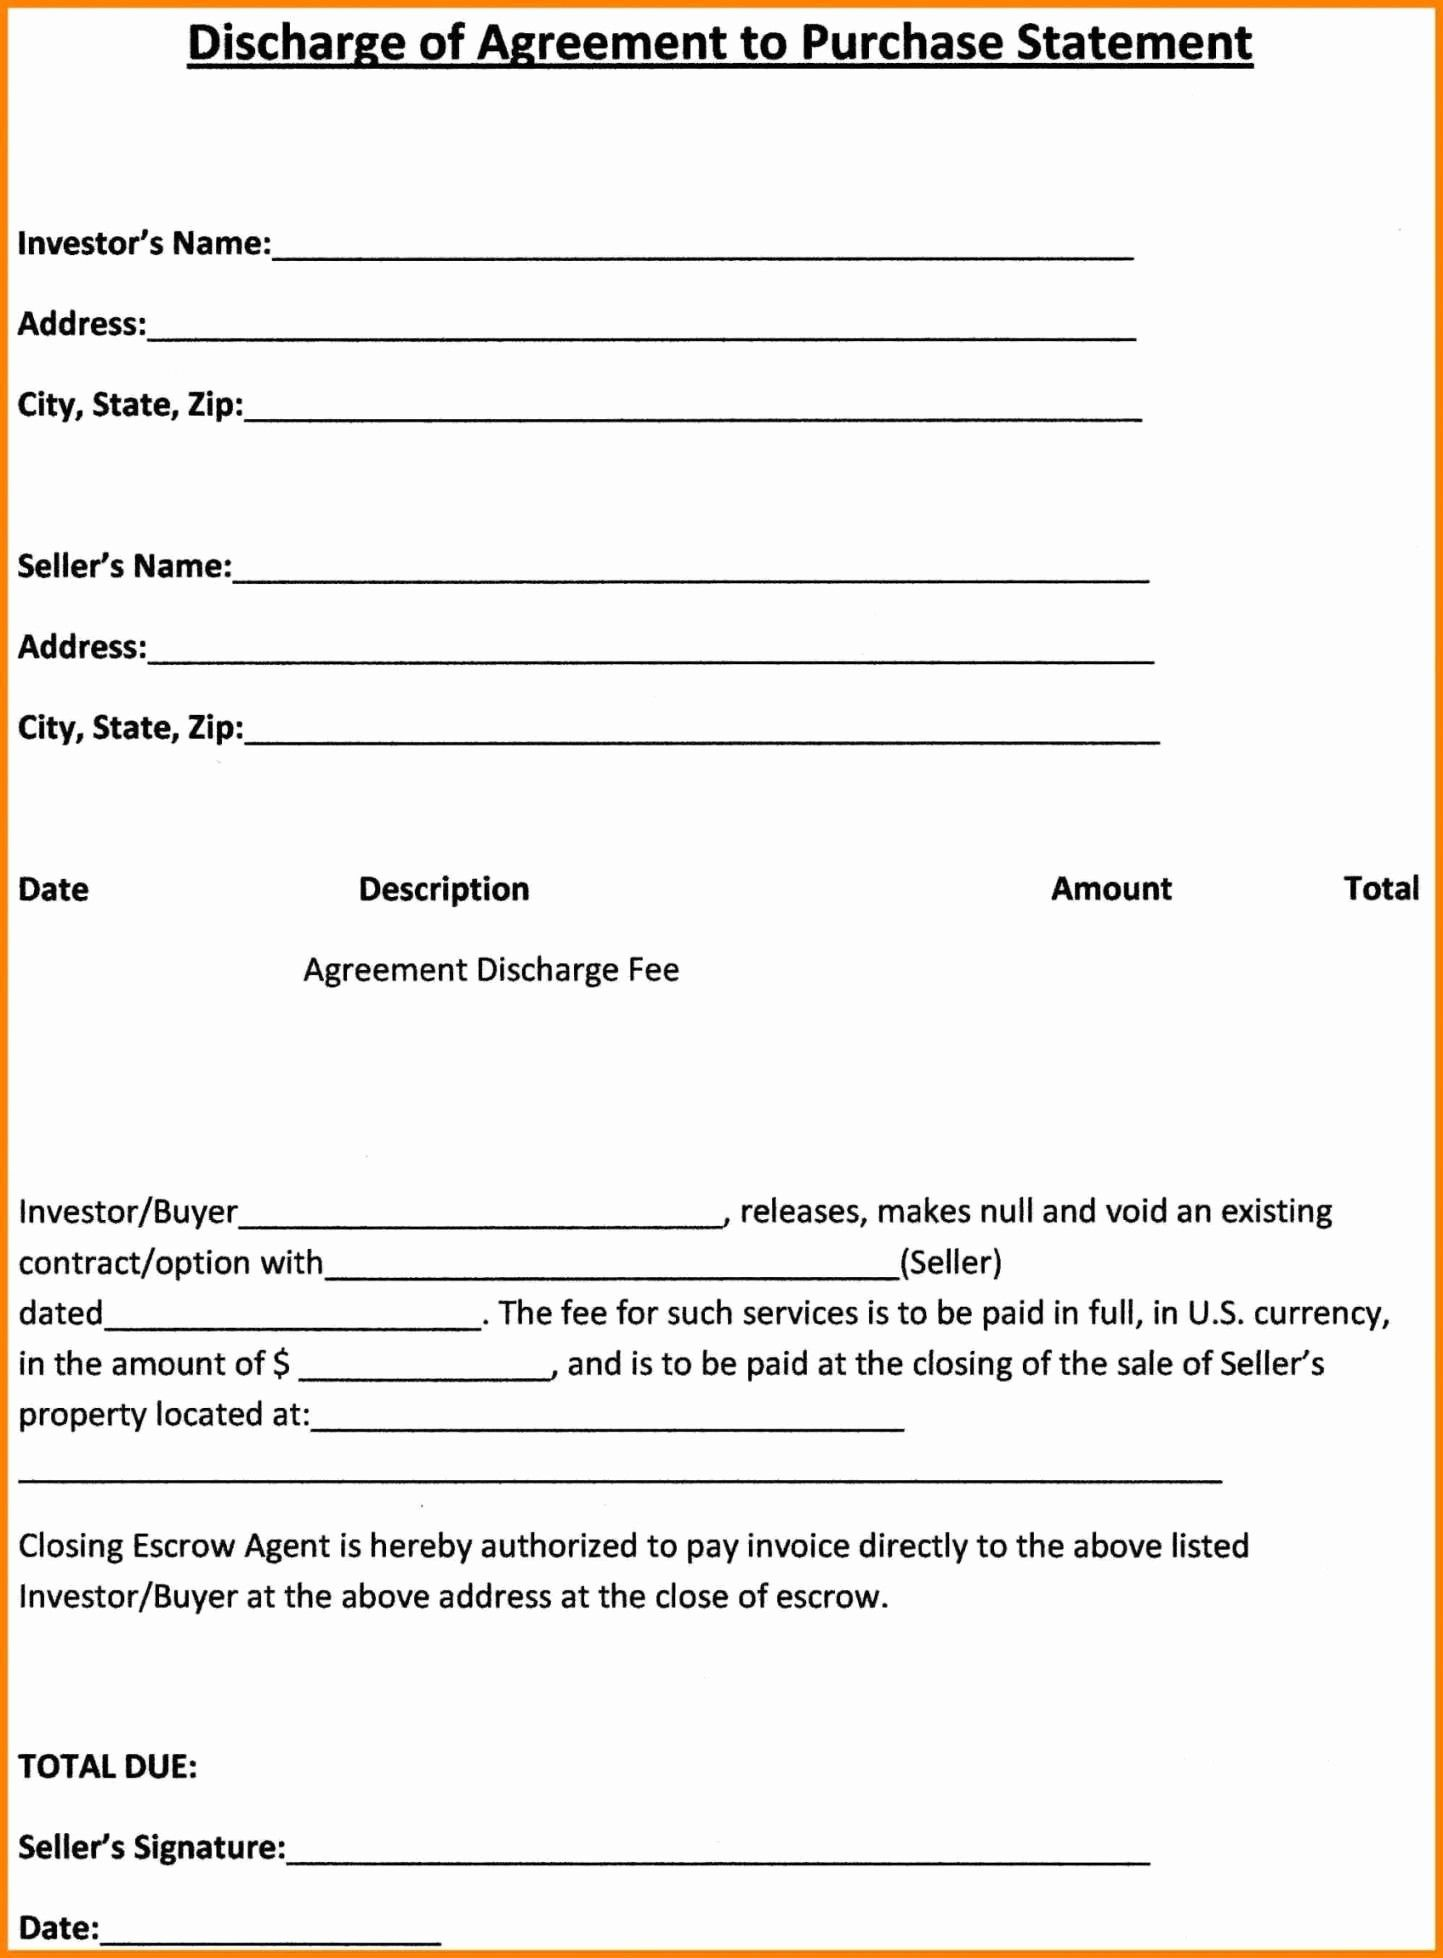 Free Real Estate Contract Template New Land Sale Agreement Template Regular Free Simple Real Purchase Agreement Contract Template Real Estate Contract